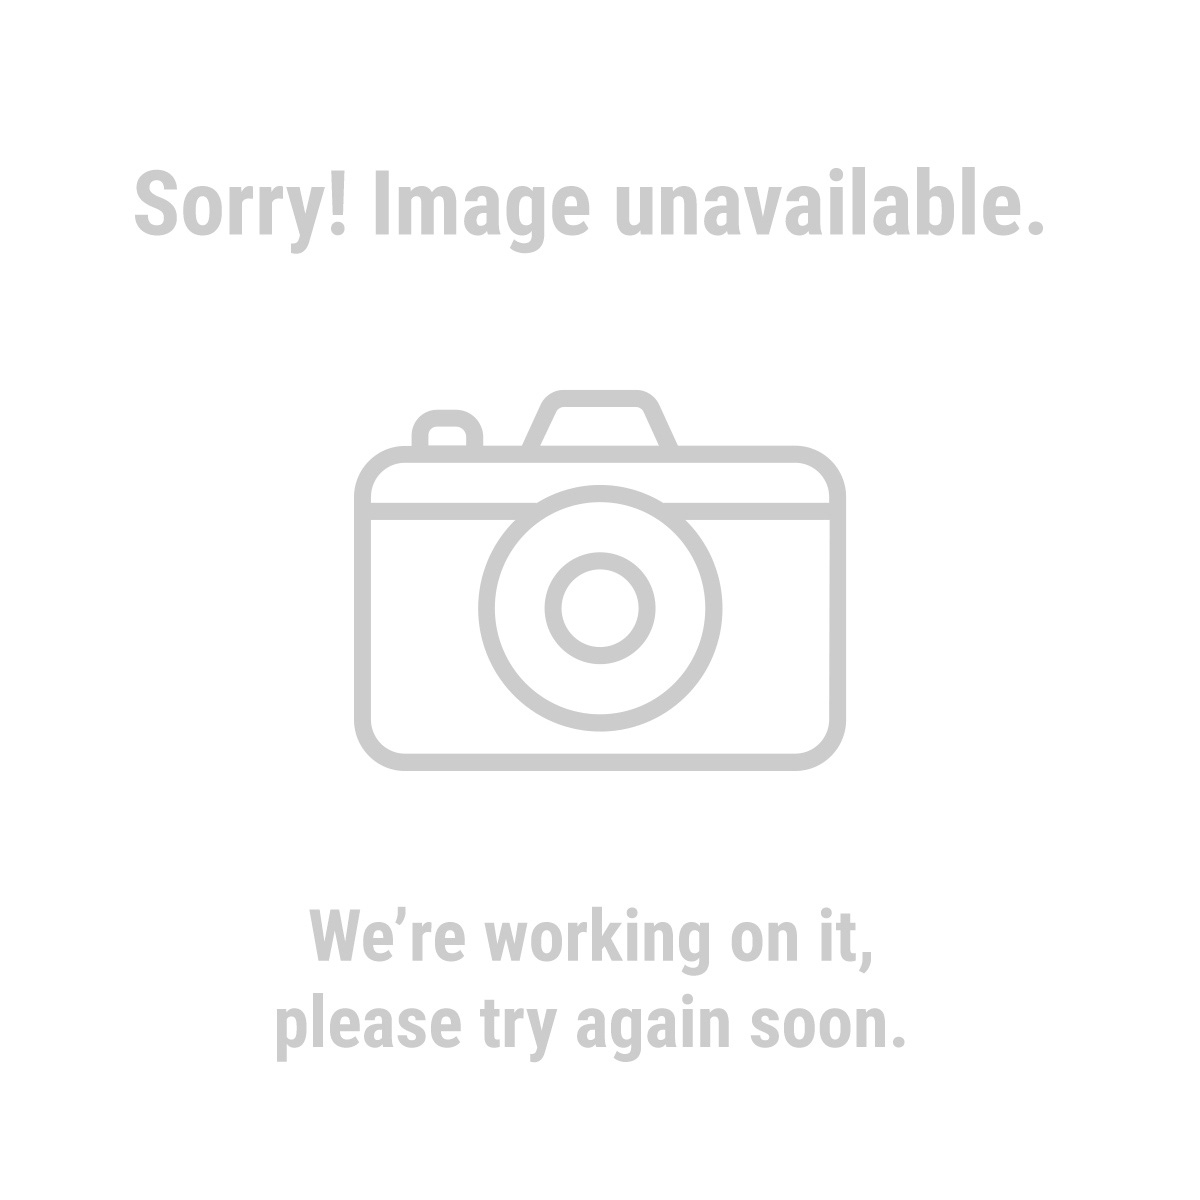 HFT 60457 8 ft. 4 in. x 11 ft. 6 in. Green/Farm All Purpose/Weather Resistant Tarp